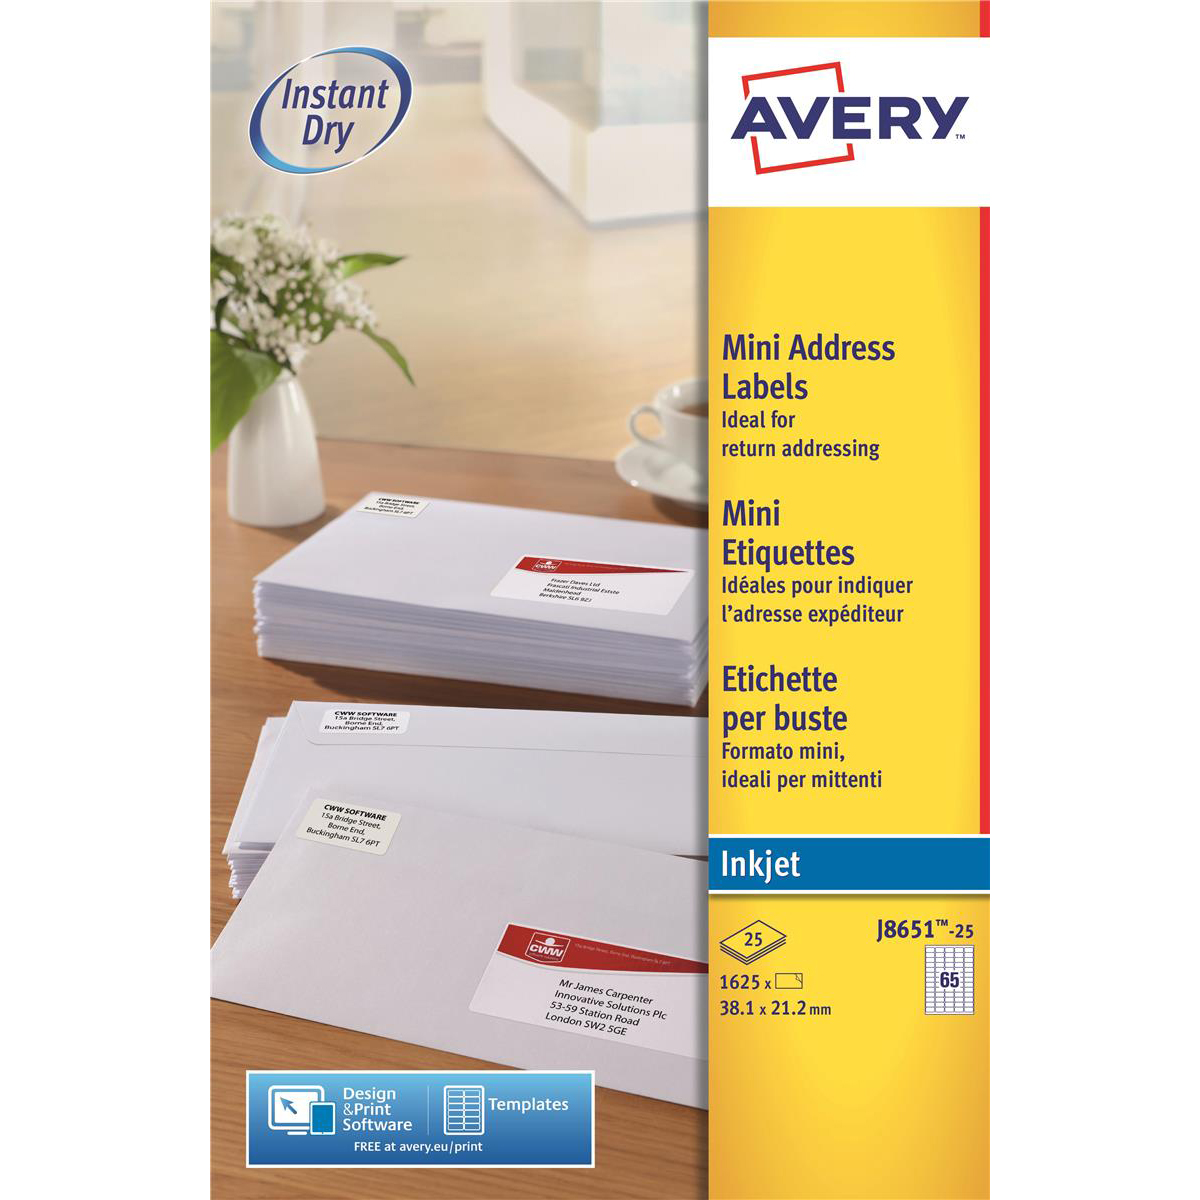 Address Avery Mini Address Labels Inkjet 65 per Sheet 38.1x21.2mm White Ref J8651-25 1625 Labels